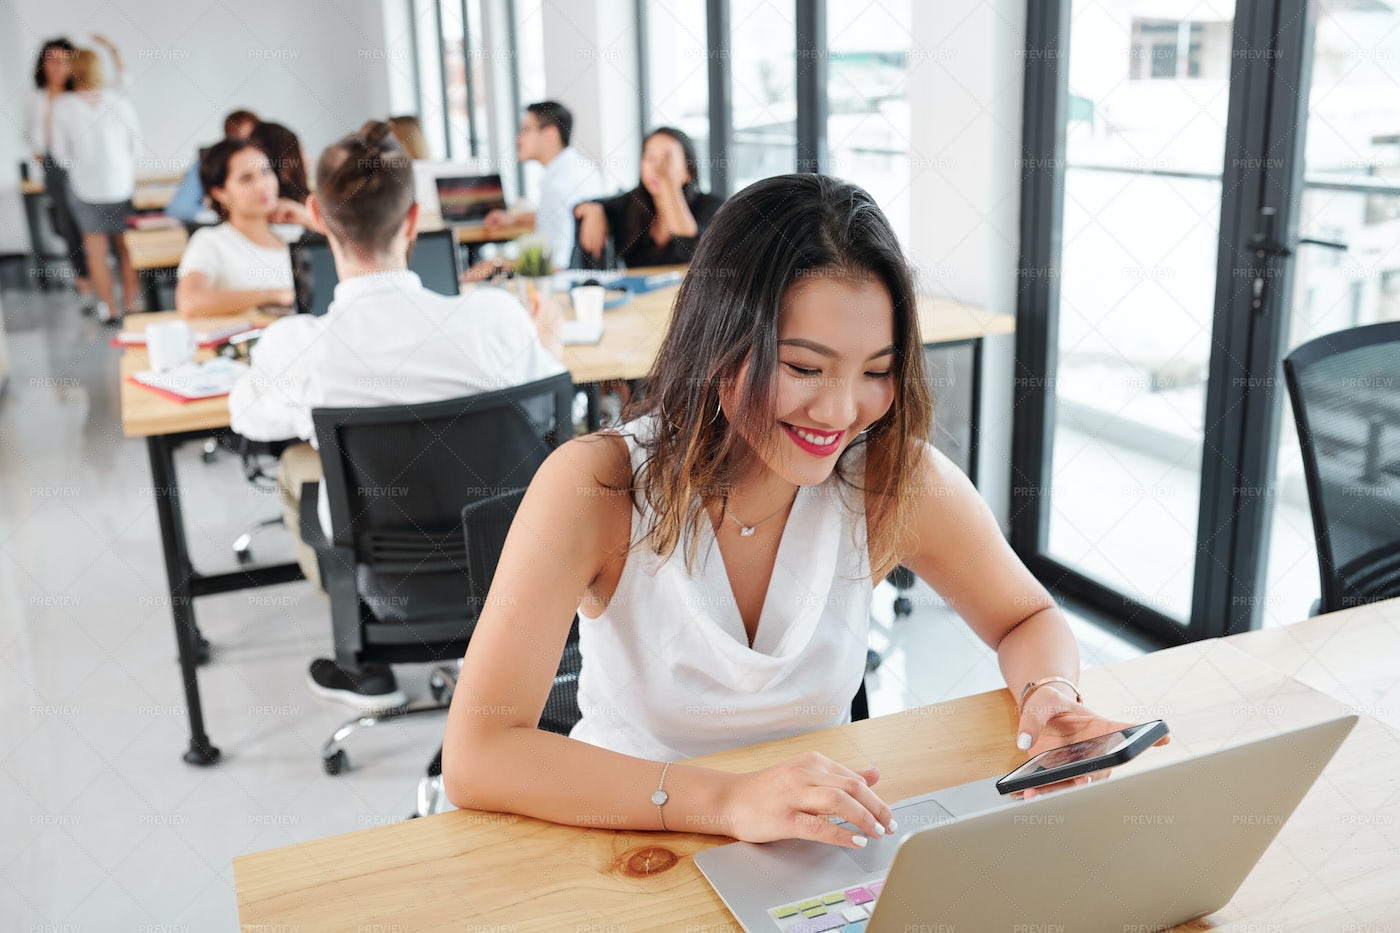 Businesswoman Working At Her Workplace: Stock Photos